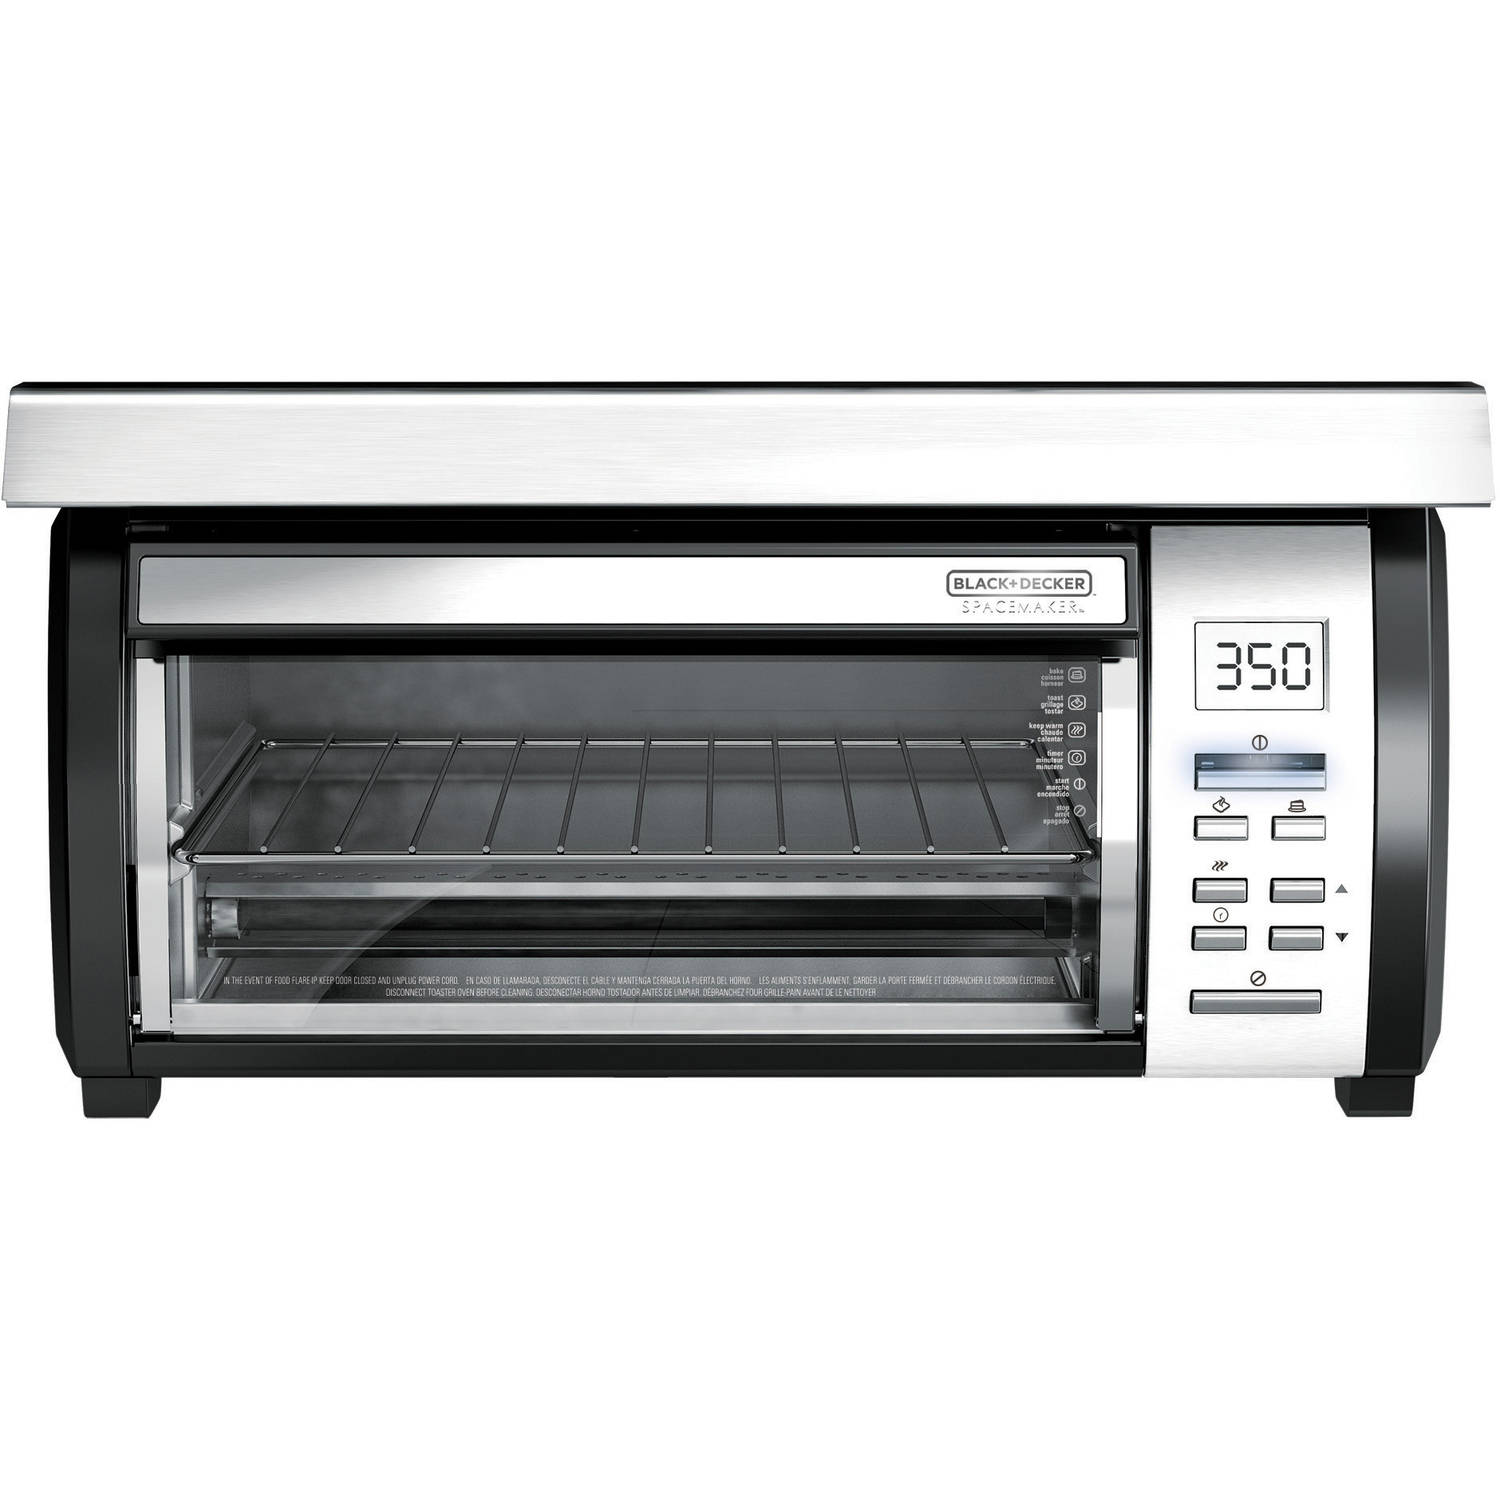 black+decker spacemaker toaster oven, black and stainless